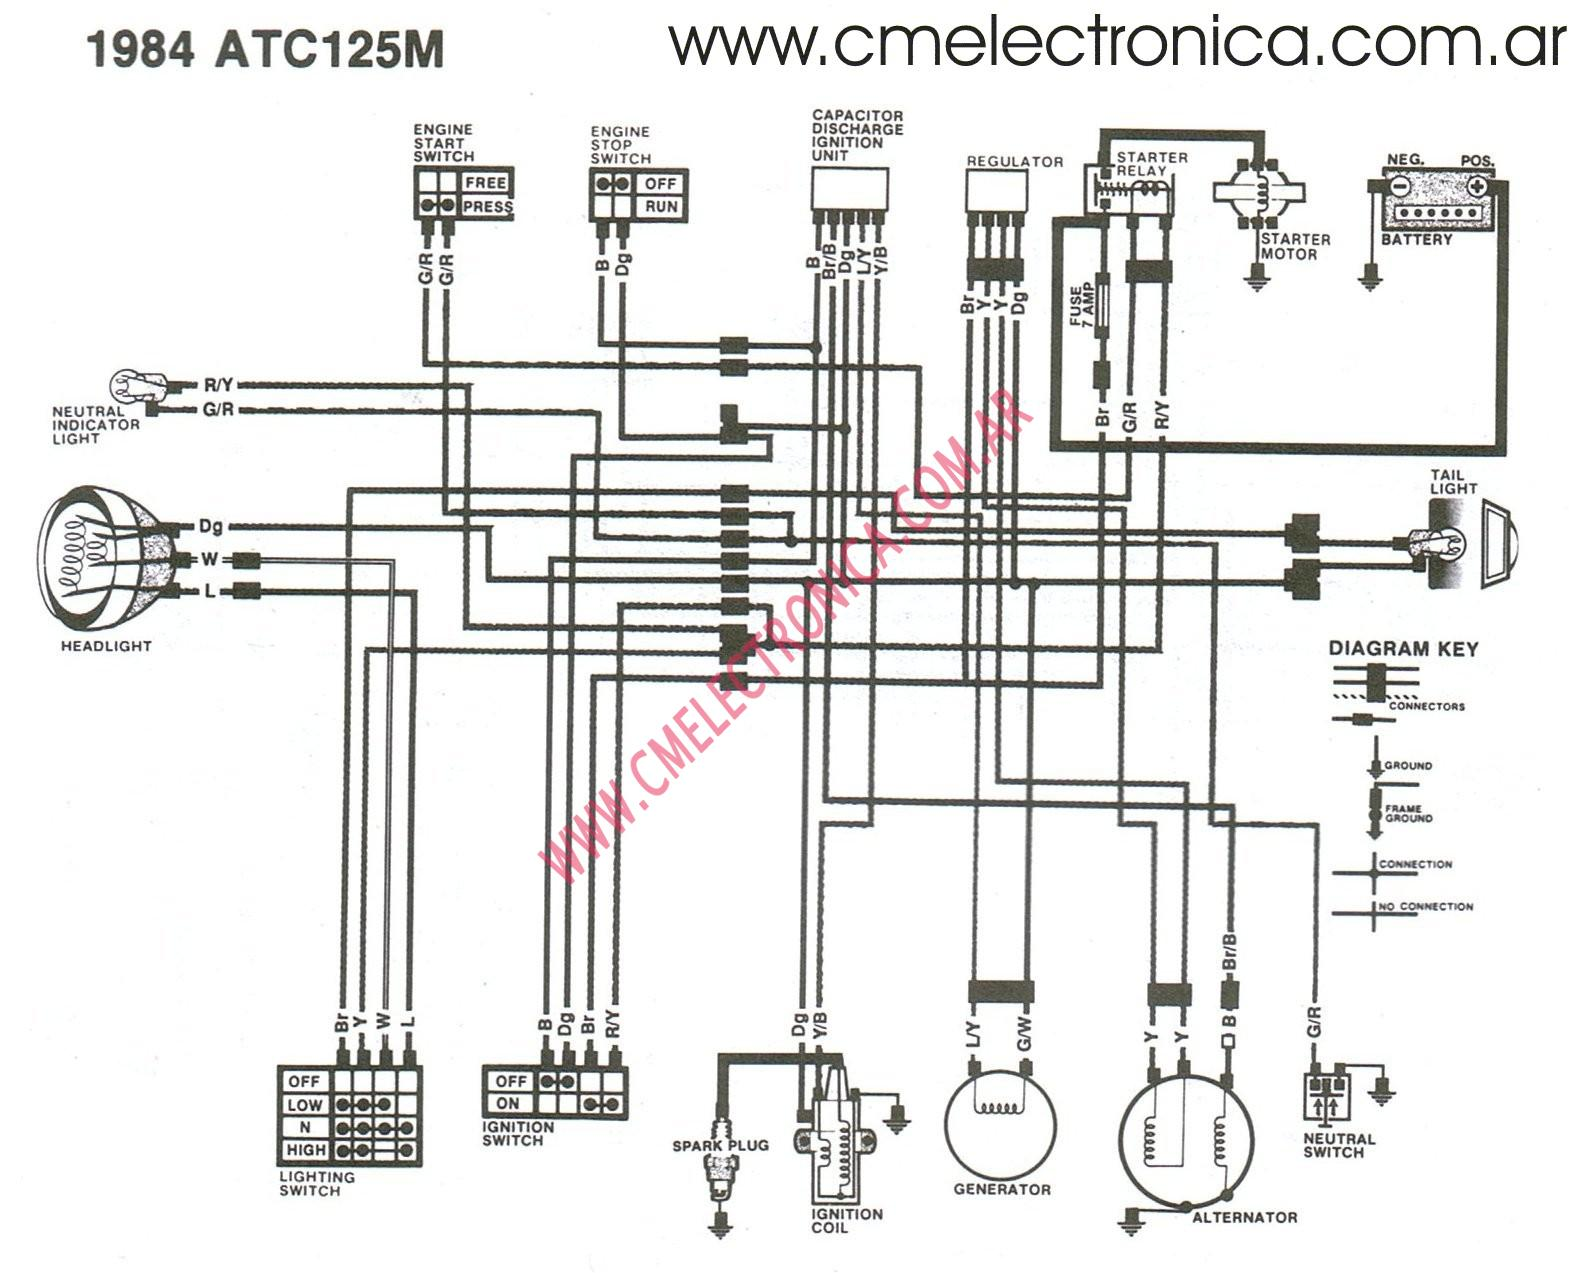 Perfect Fire Alarm Flow Switch Wiring Diagram Image - Wiring Diagram ...